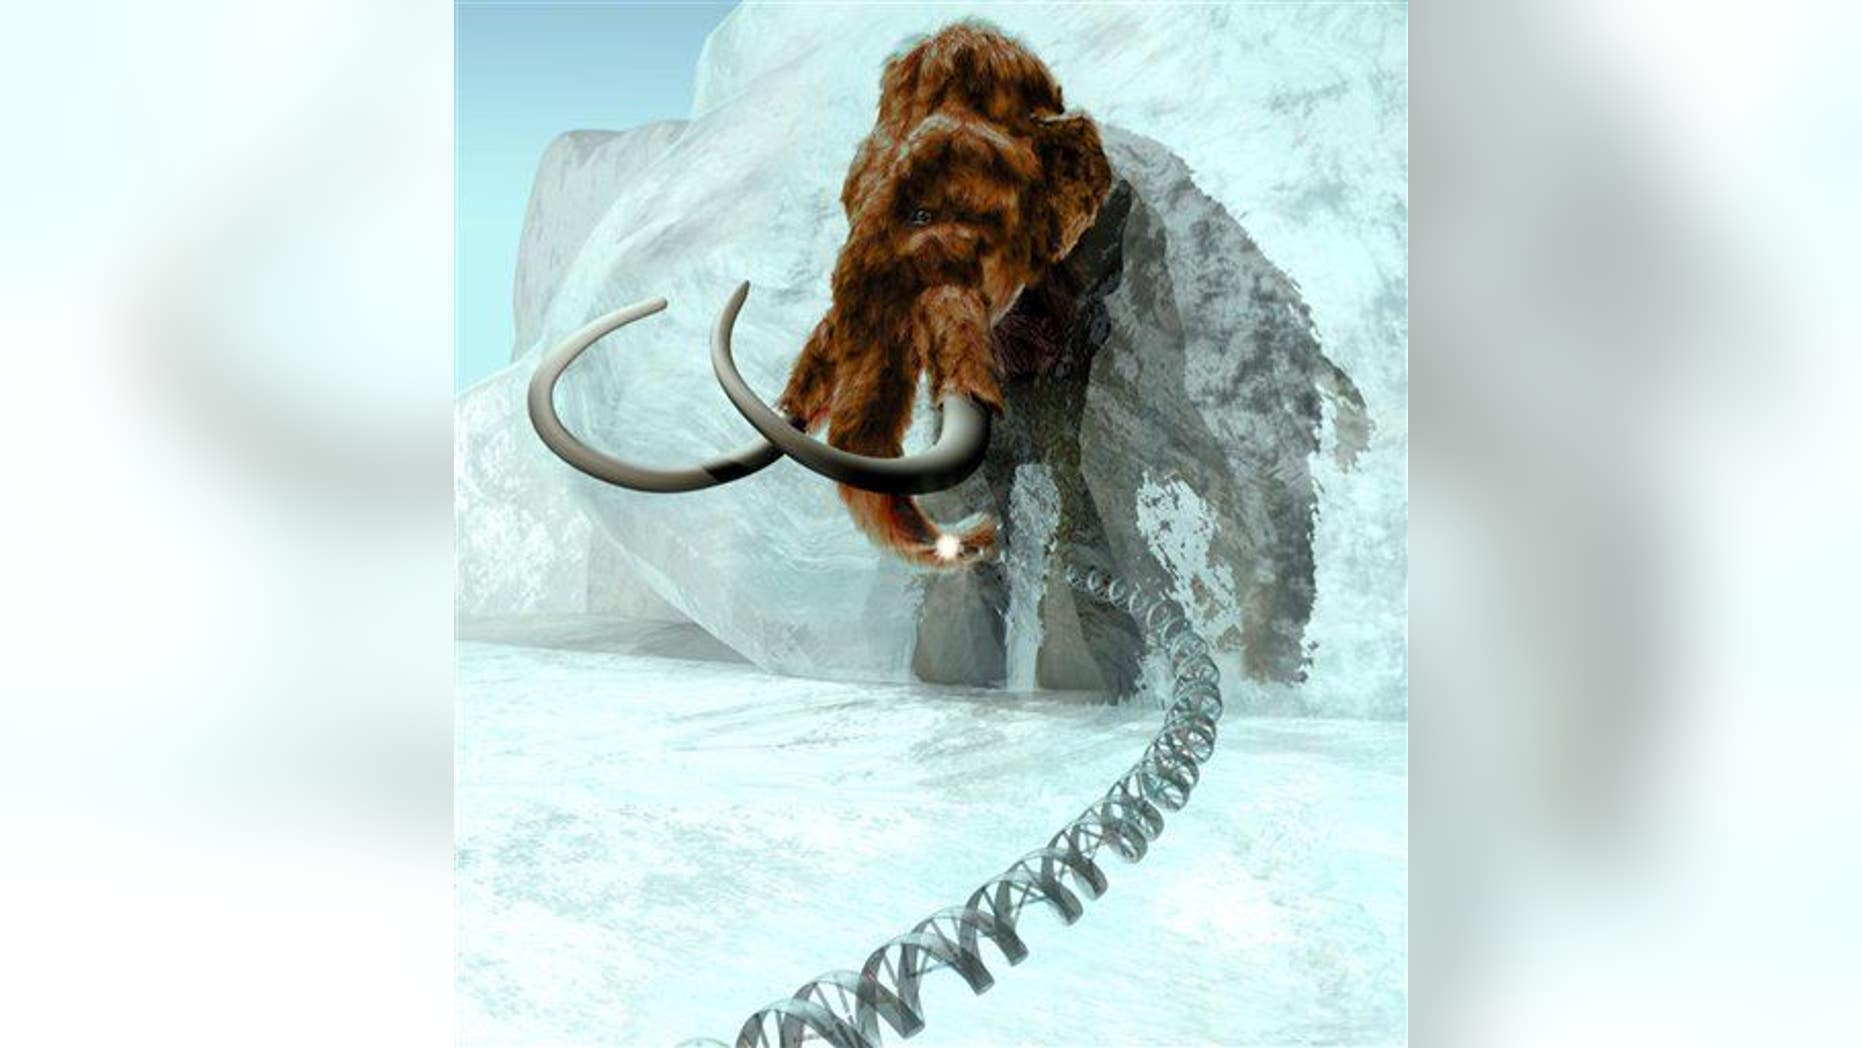 A 3D computer-generated image produced by ExhibitEase LLC  shows a  woolly mammoth emerging from ice block.